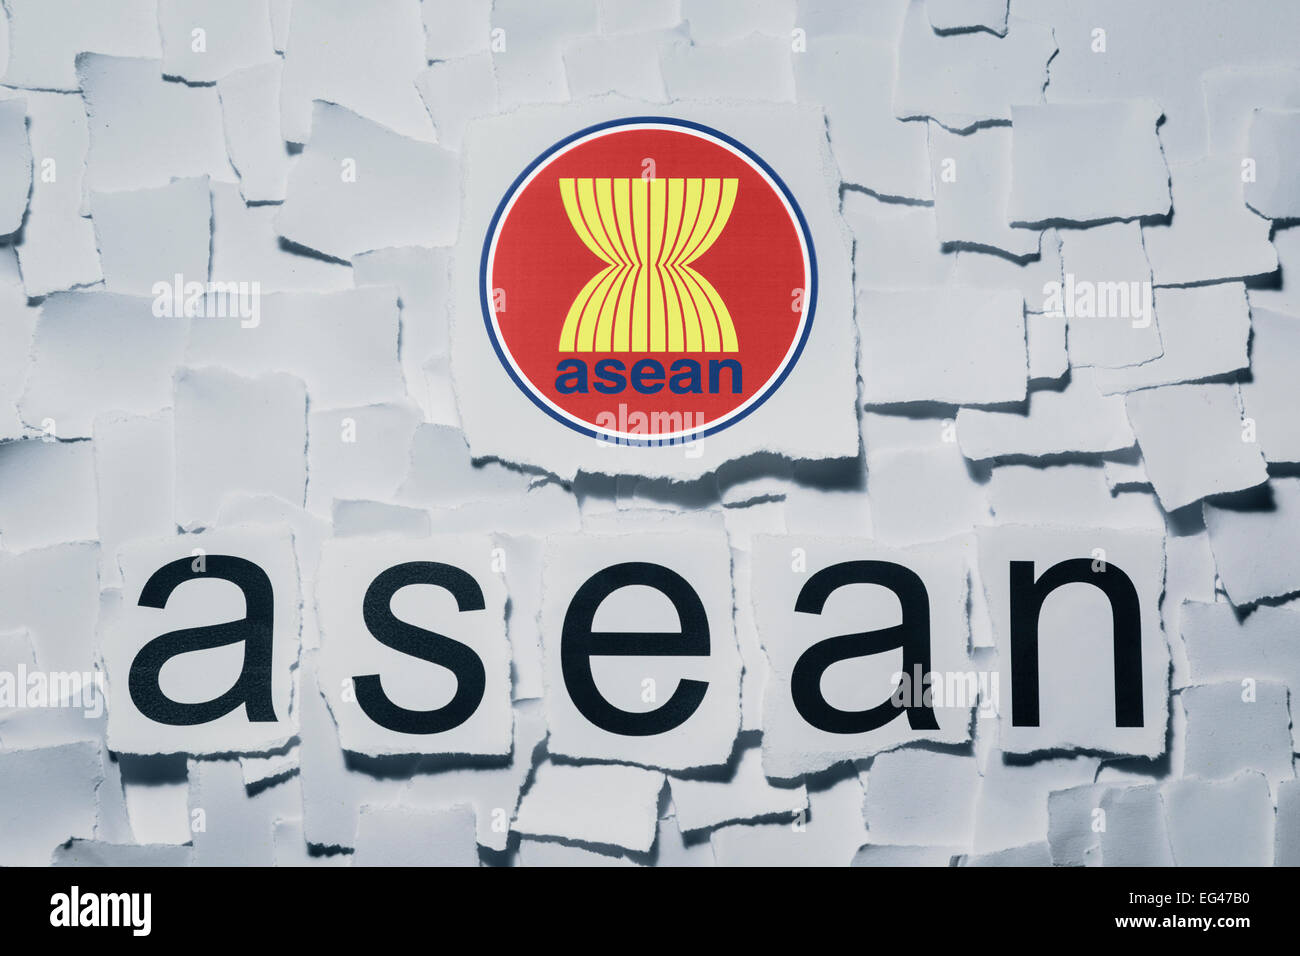 Association of Southeast Asian Nations. ASEAN - Stock Image